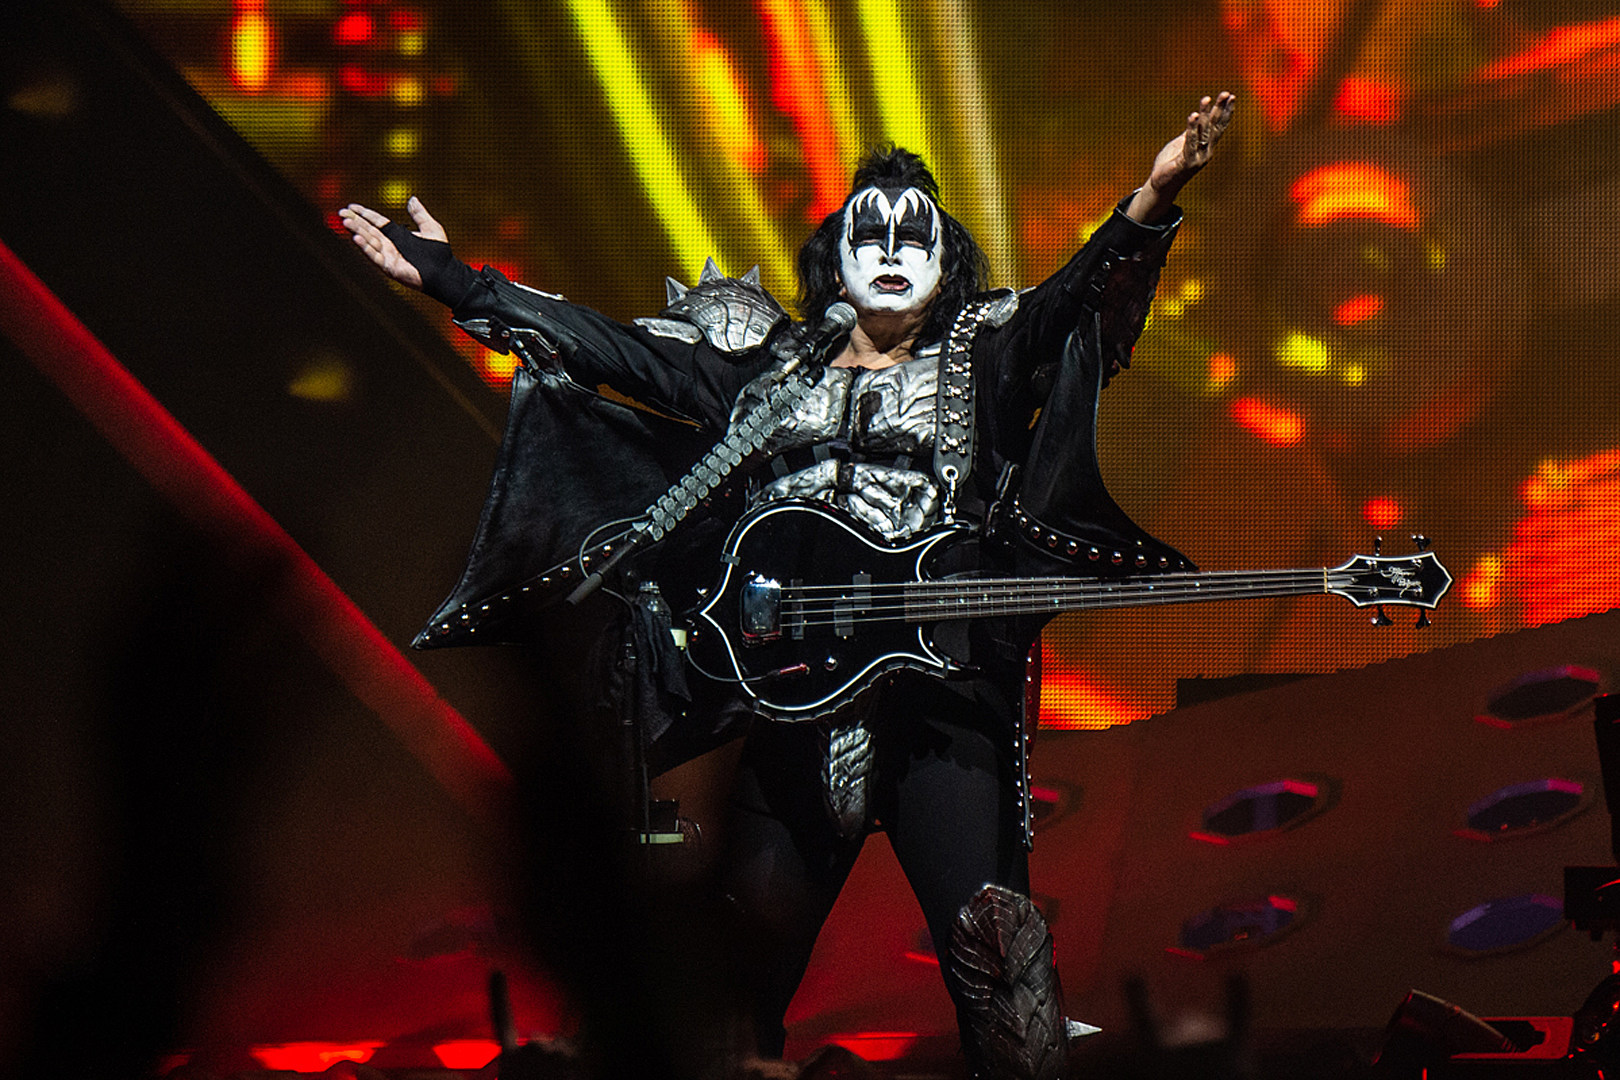 KISS' Gene Simmons 'Going to Cry Like a Young Girl' at Last Show